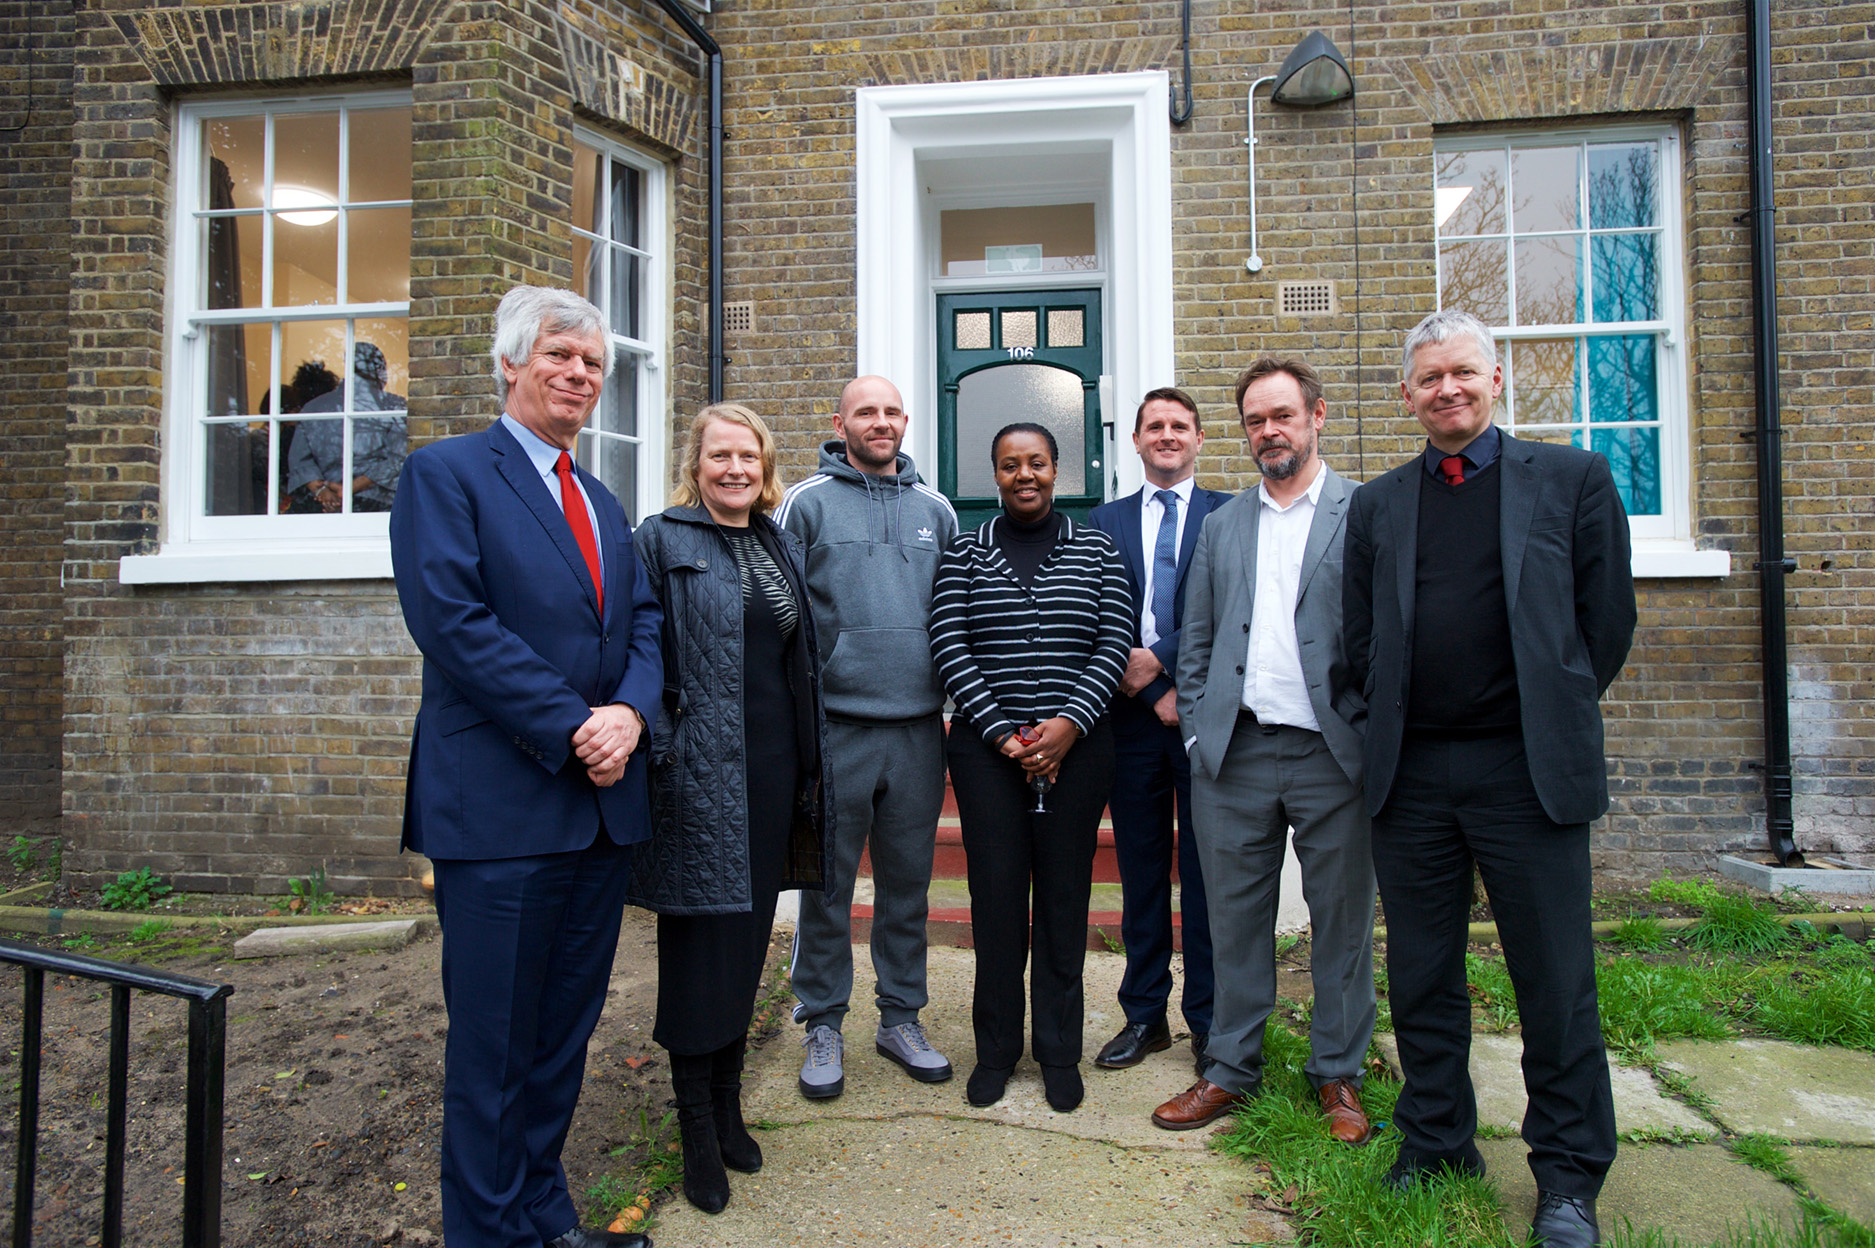 Supported housing scheme launched to help former rough sleepers in Greenwich